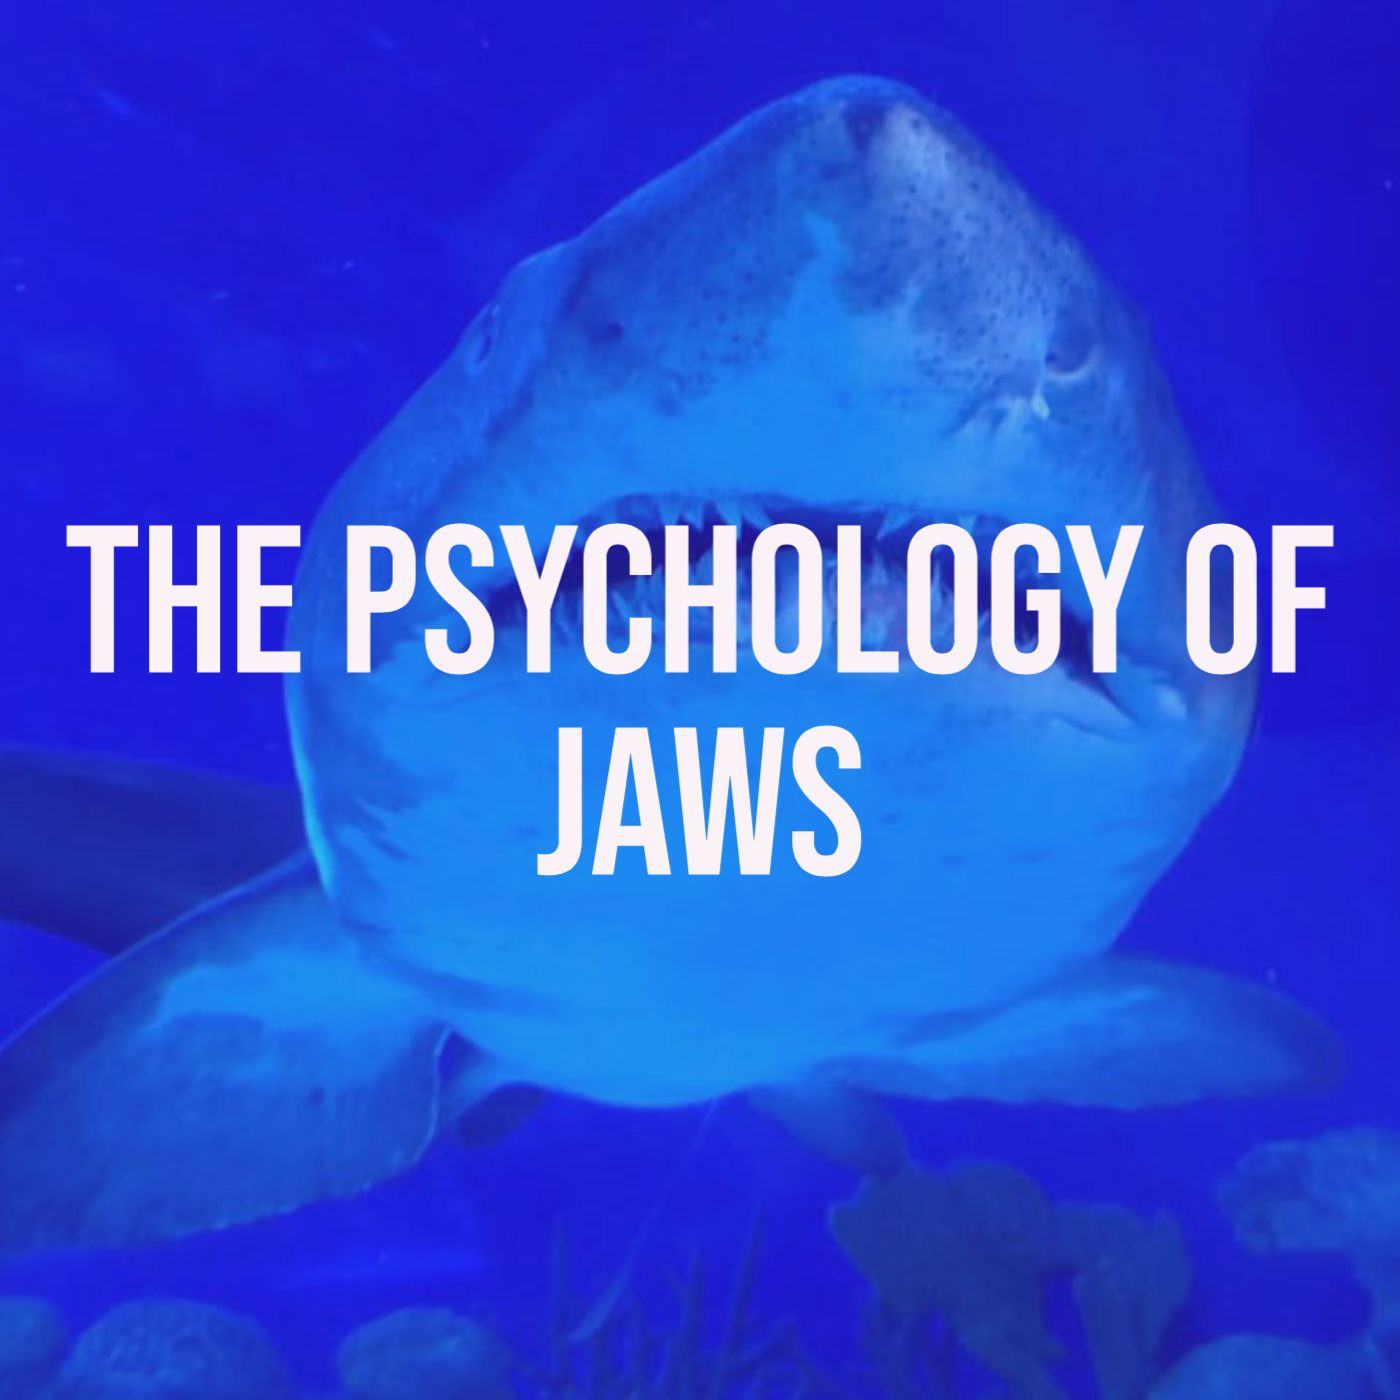 The Psychology of Jaws (1975)